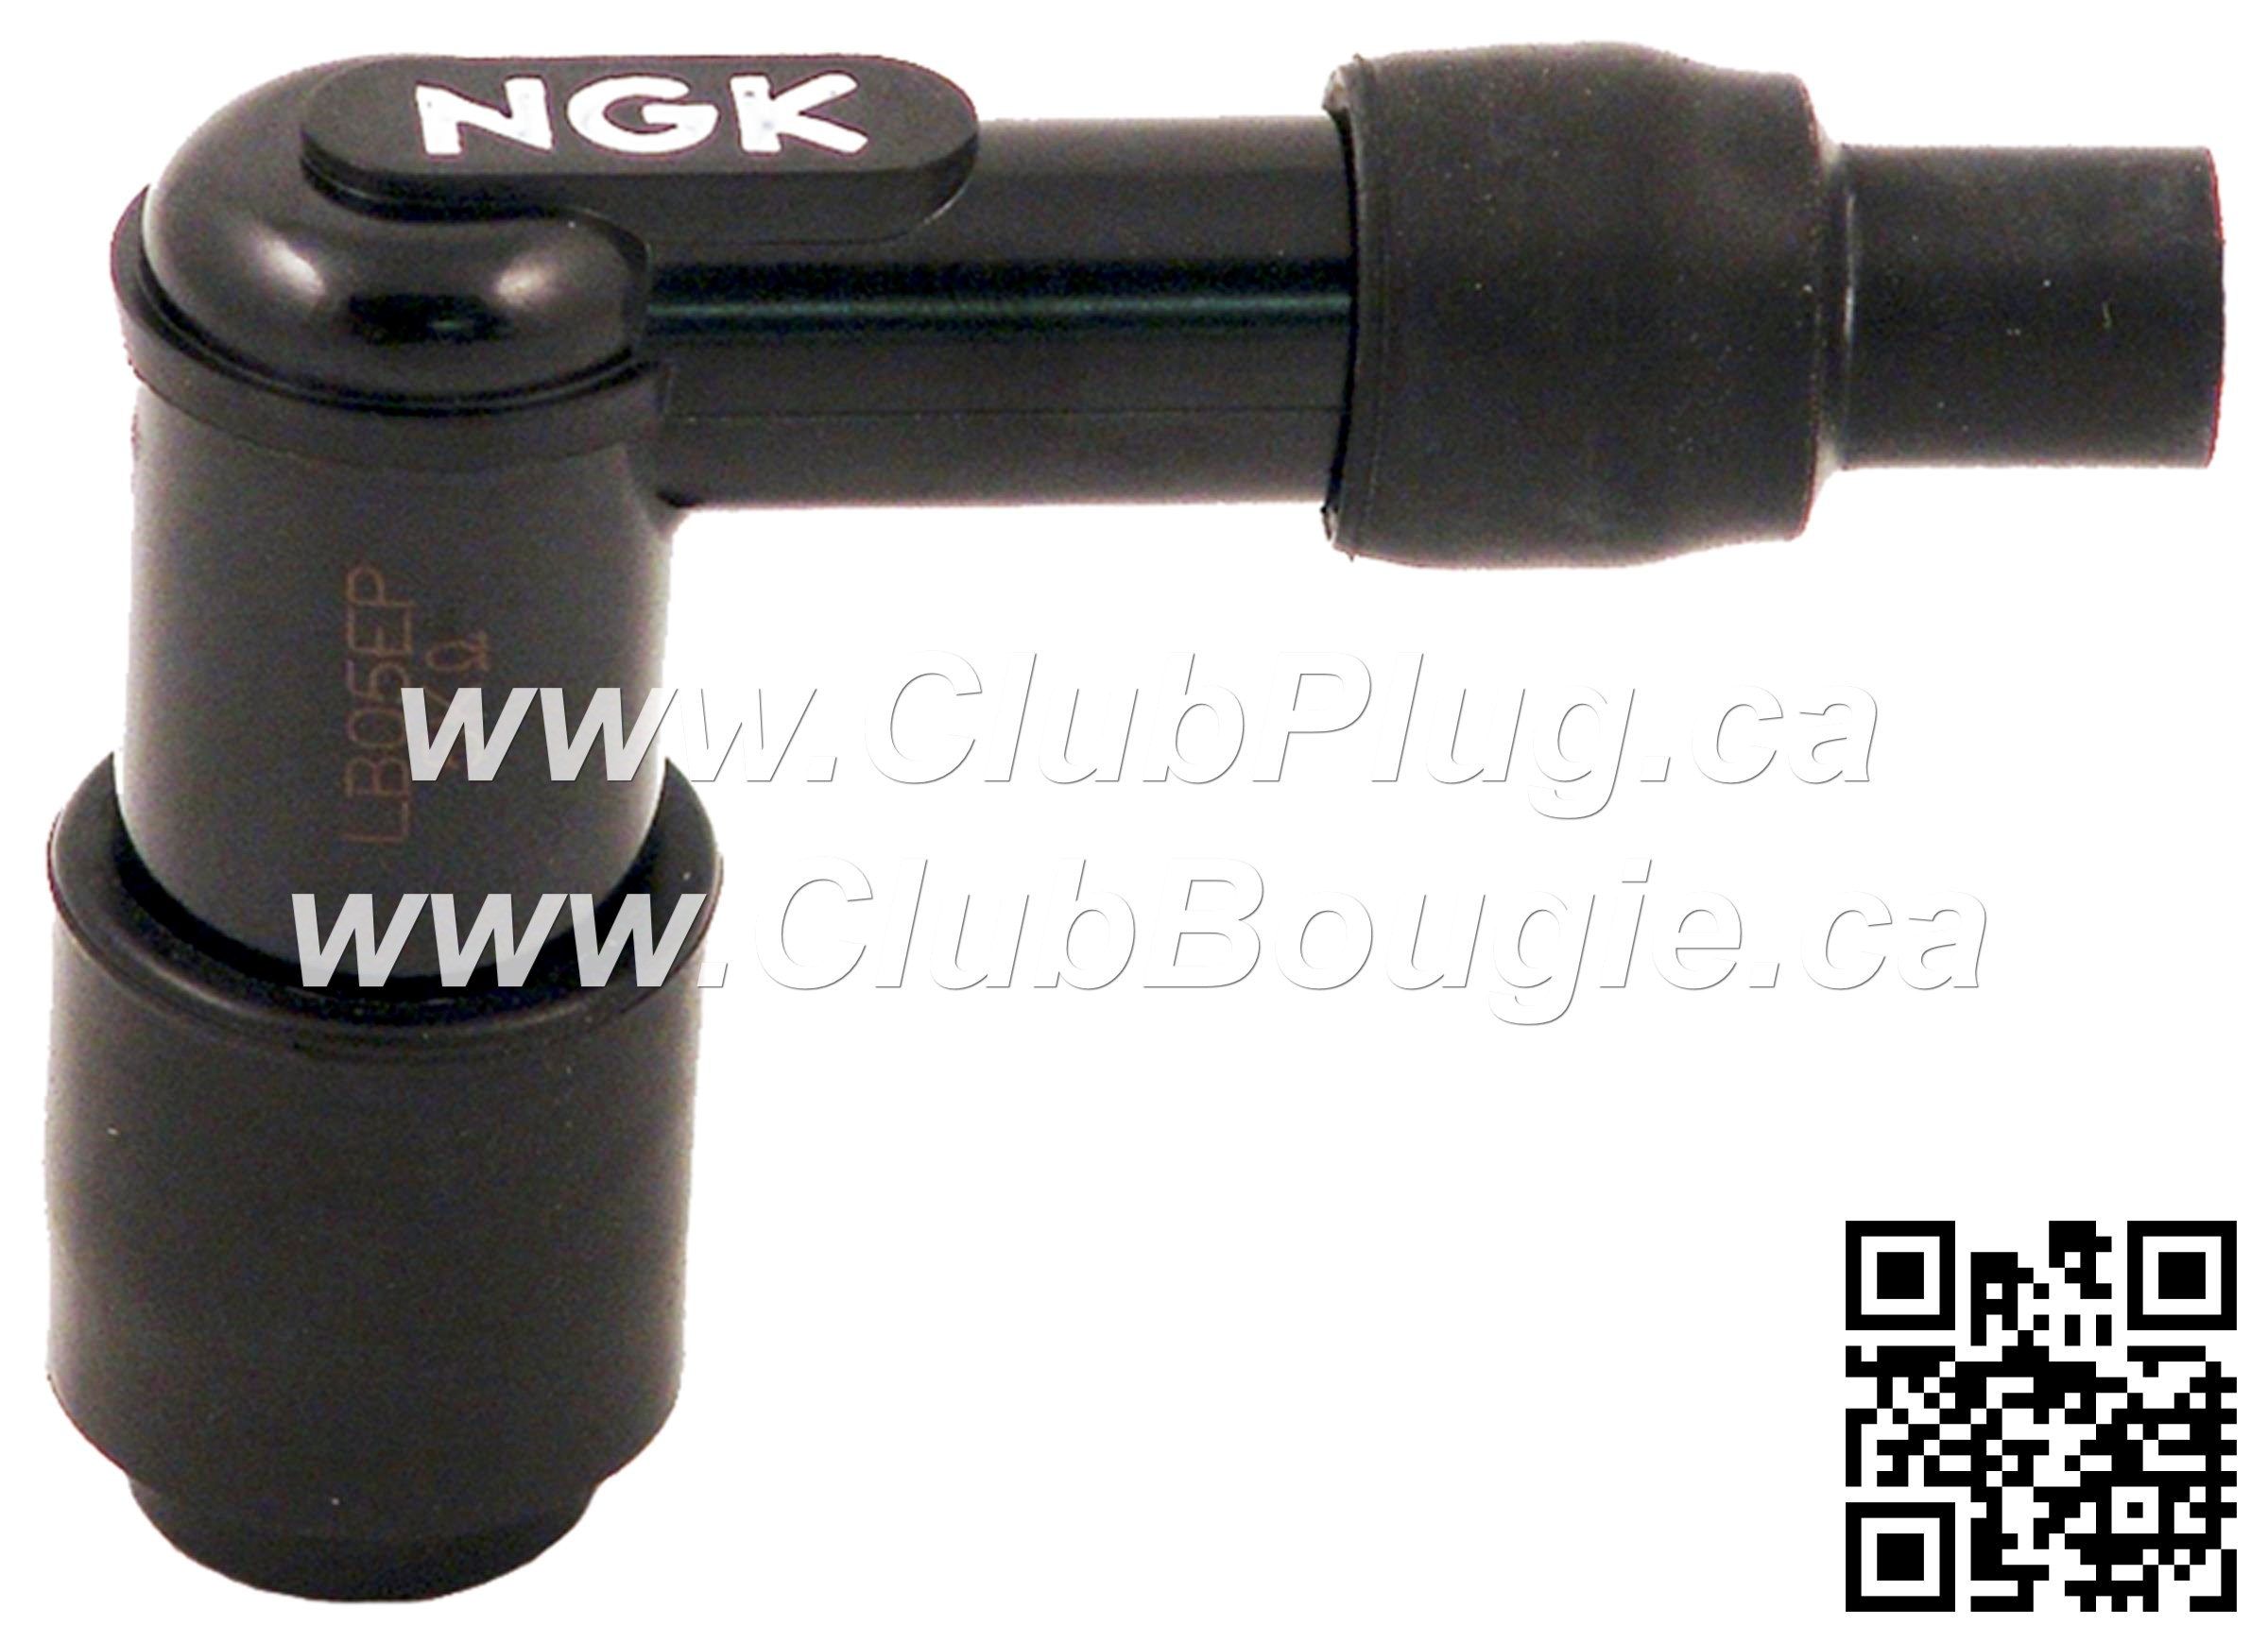 NGK Canada Sprak Plugs, Wire Sets, O2 Sensors, picture